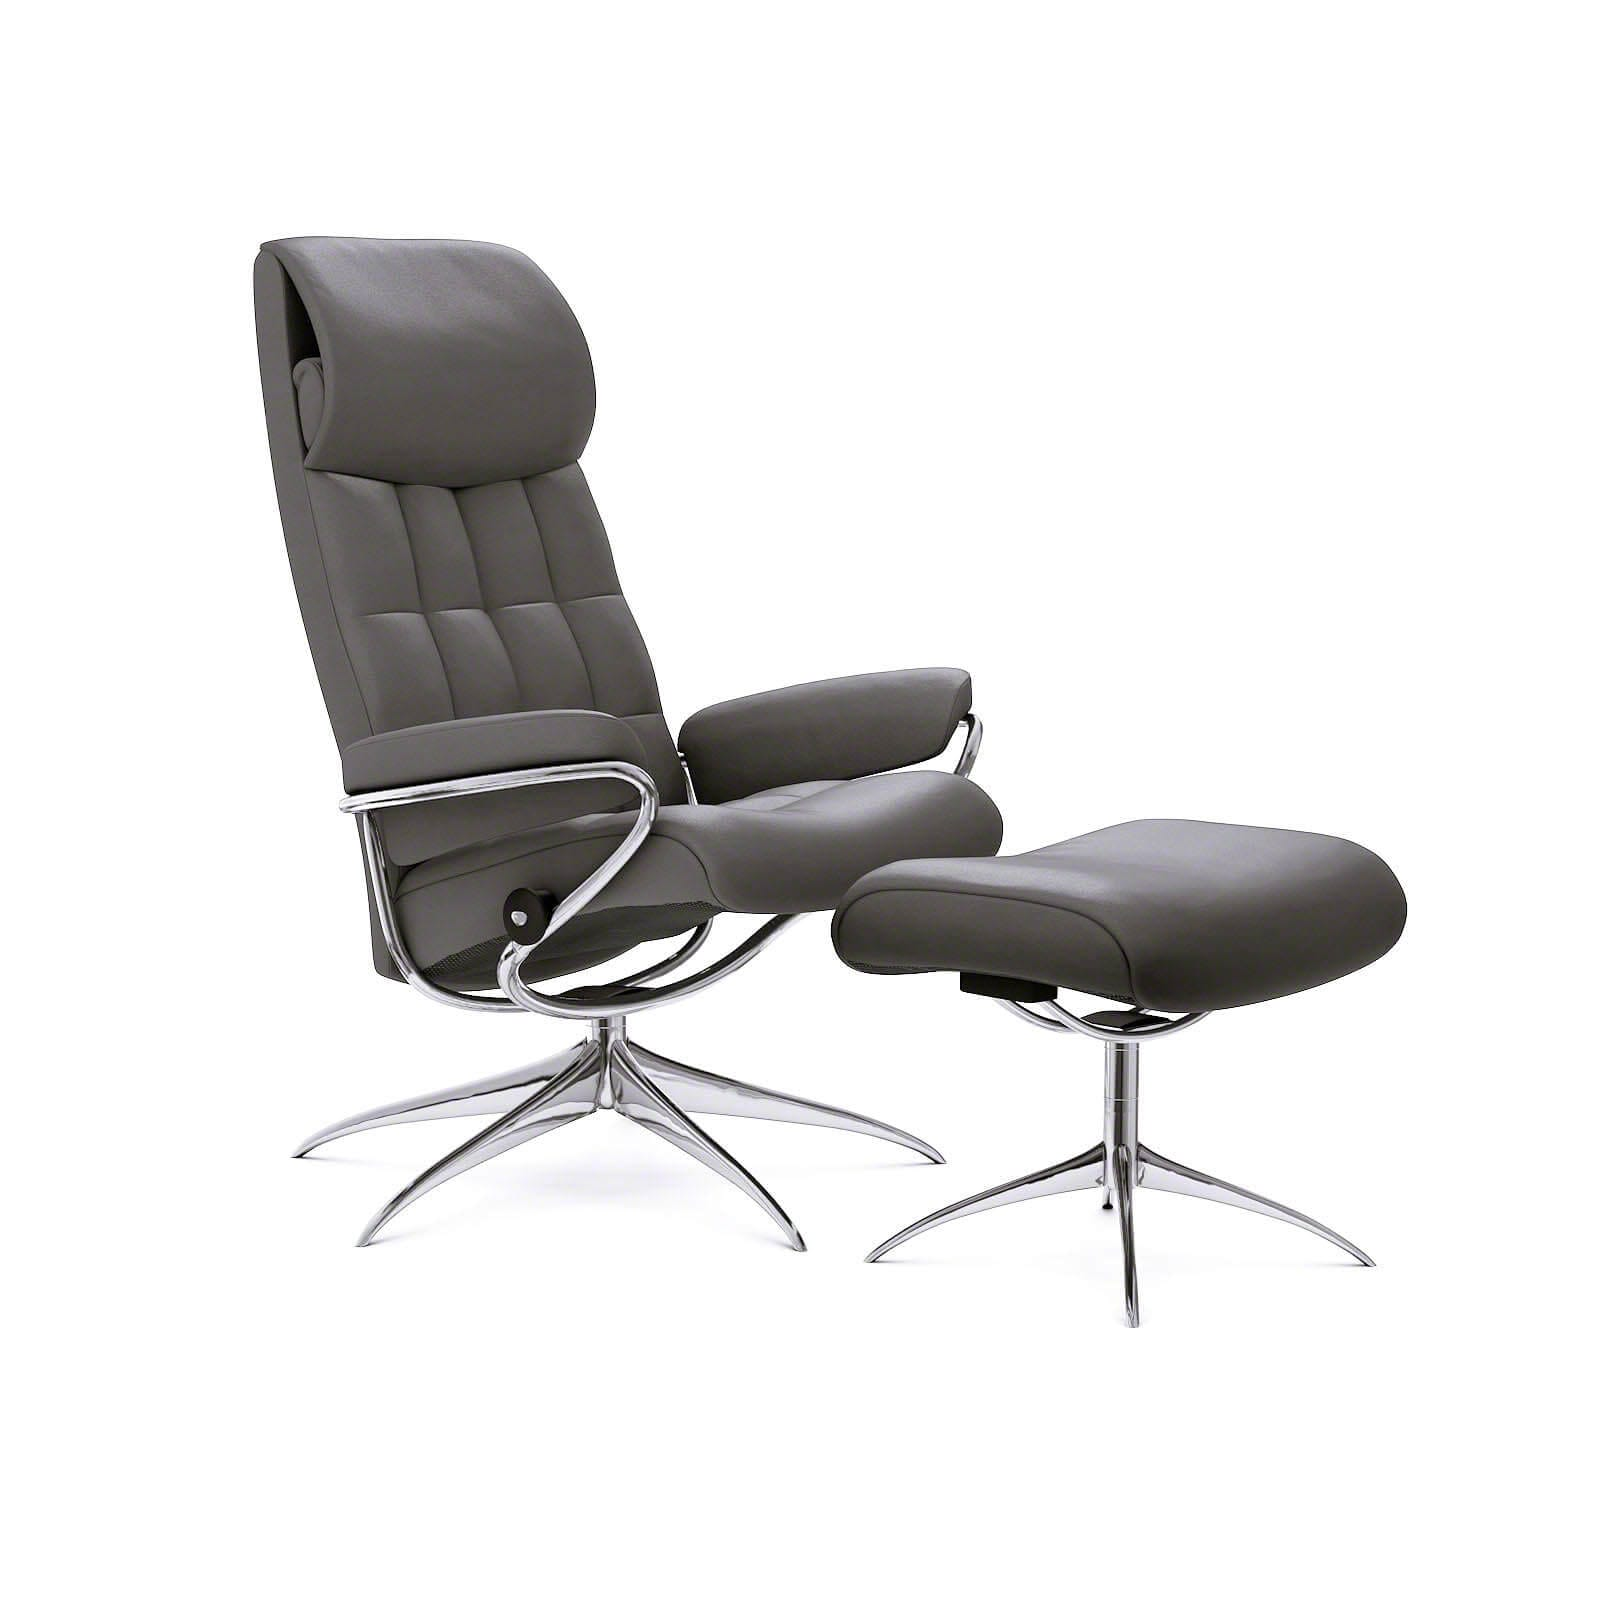 Stressless Sessel City Stressless London Sessel Mit Hoher Lehne Paloma Metal Grey